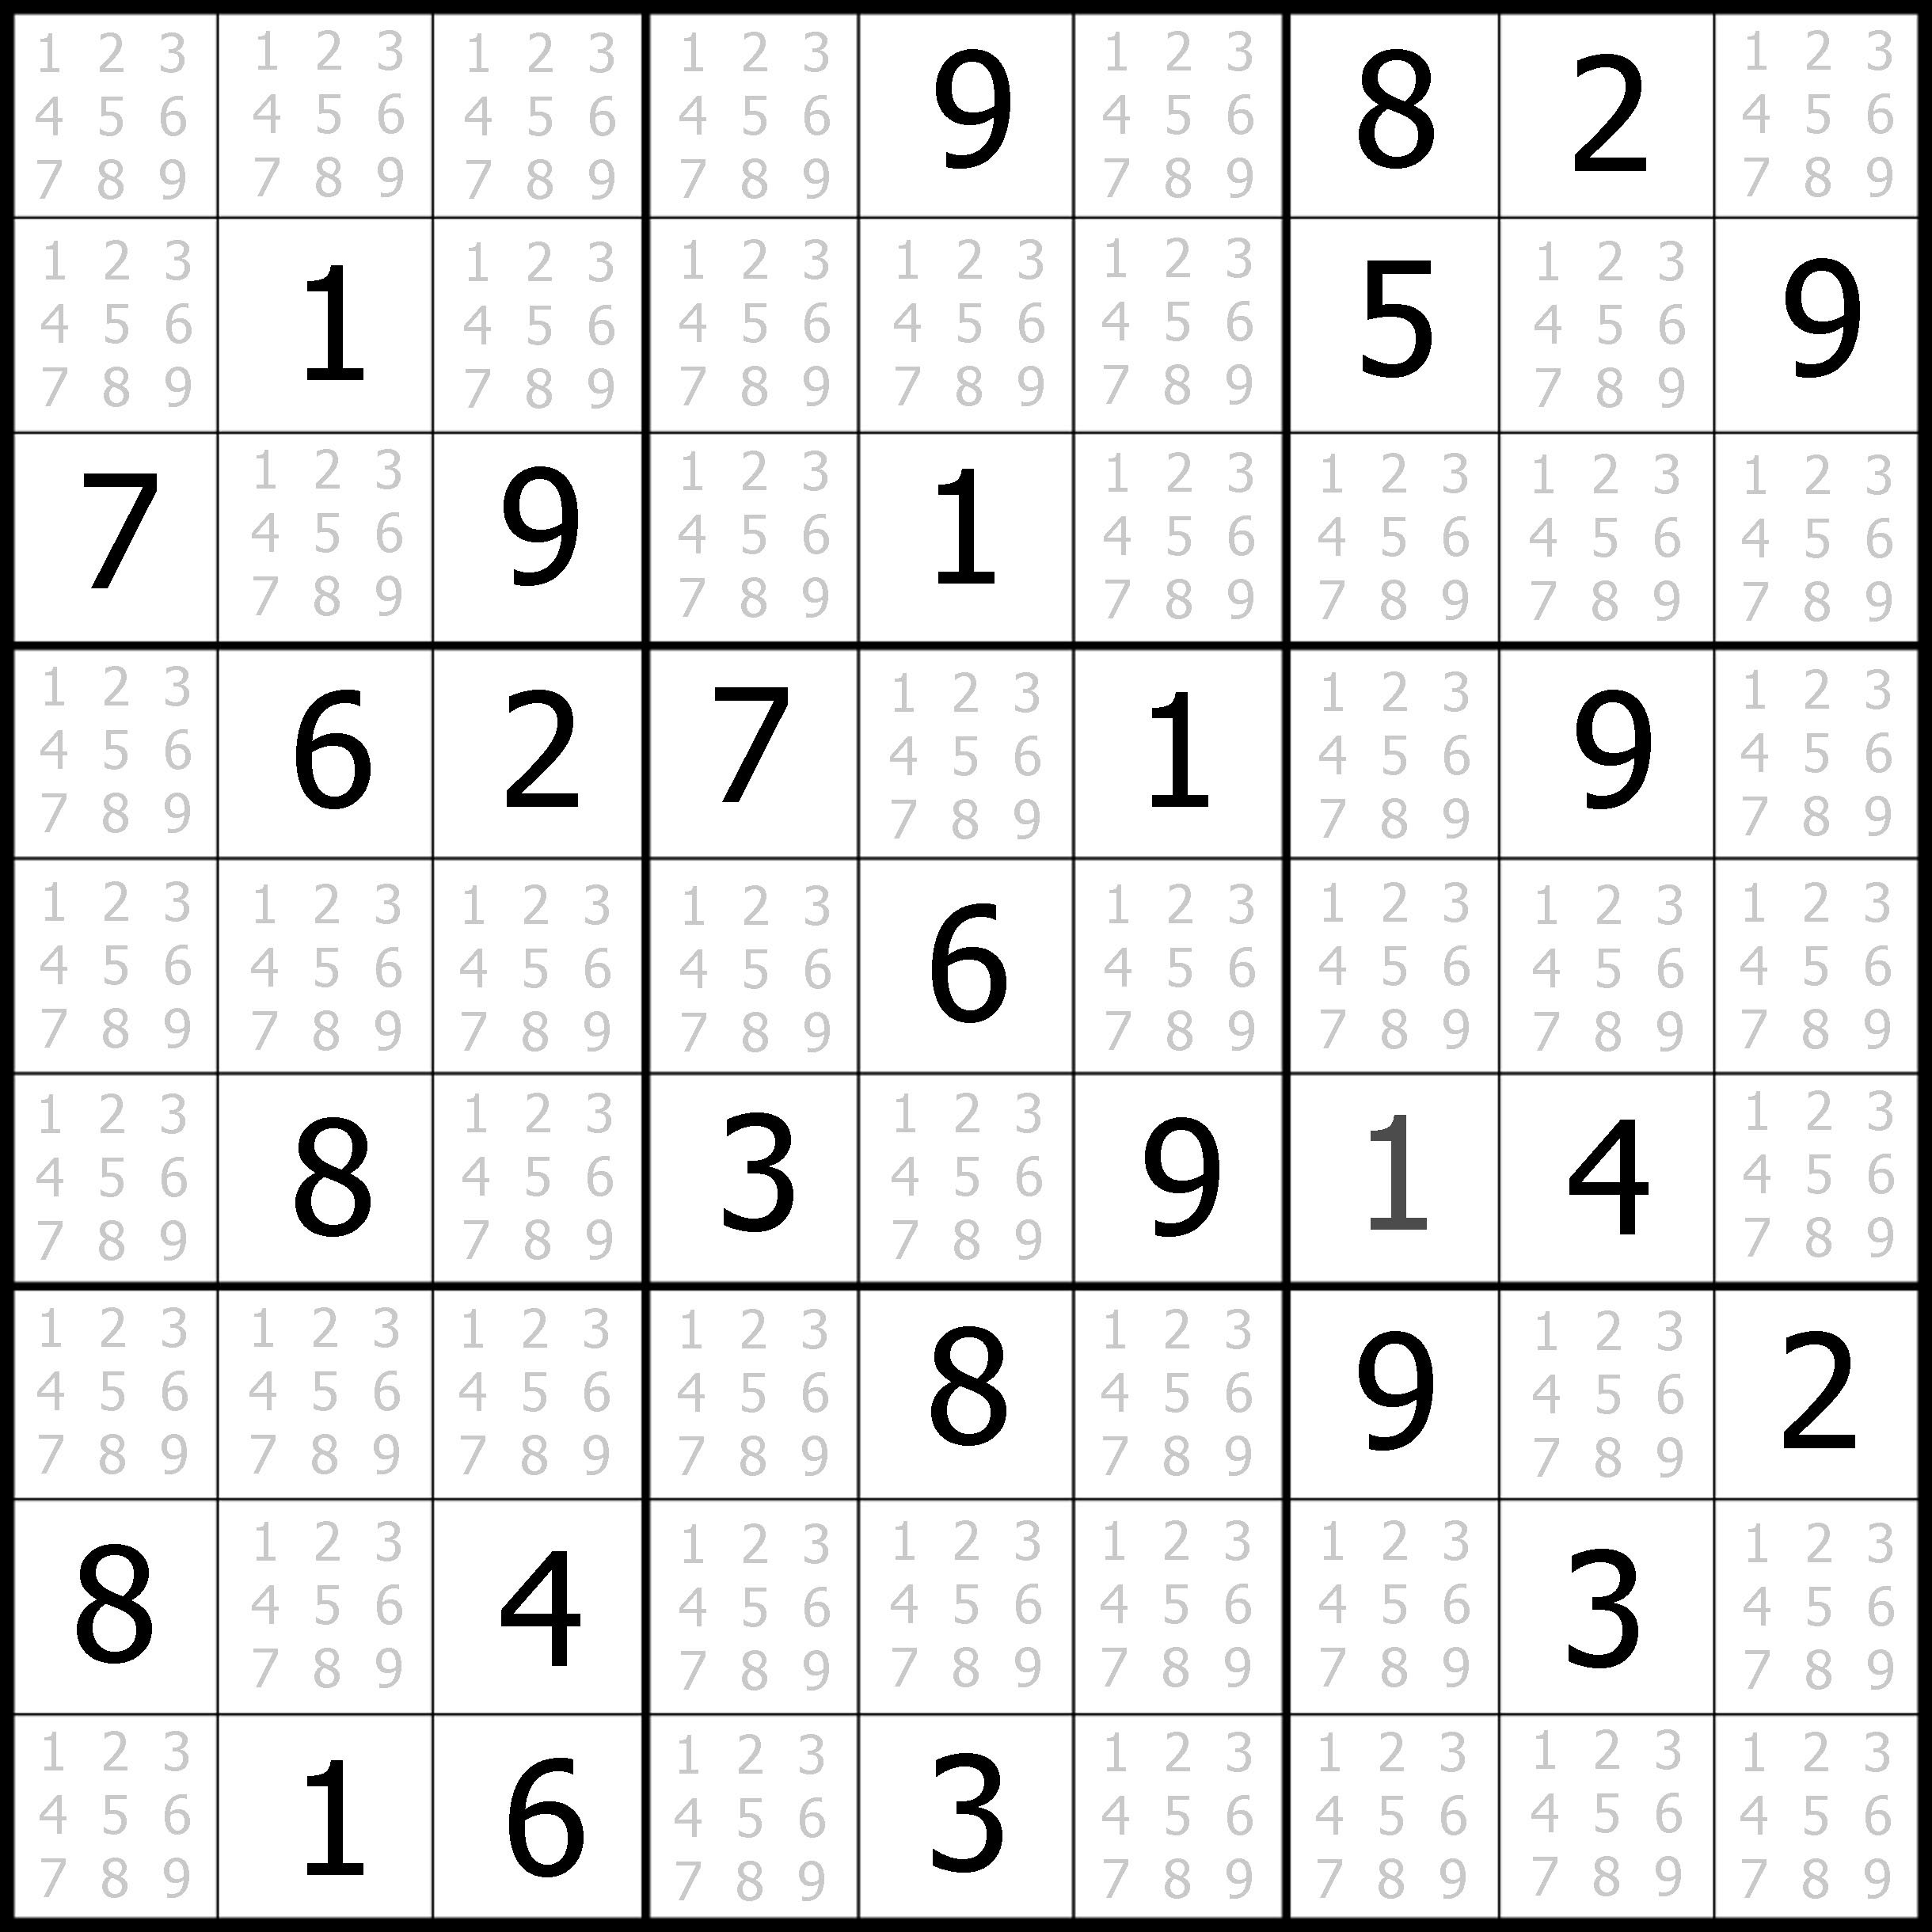 Sudoku Puzzler | Free, Printable, Updated Sudoku Puzzles With A - Printable Puzzles Sudoku